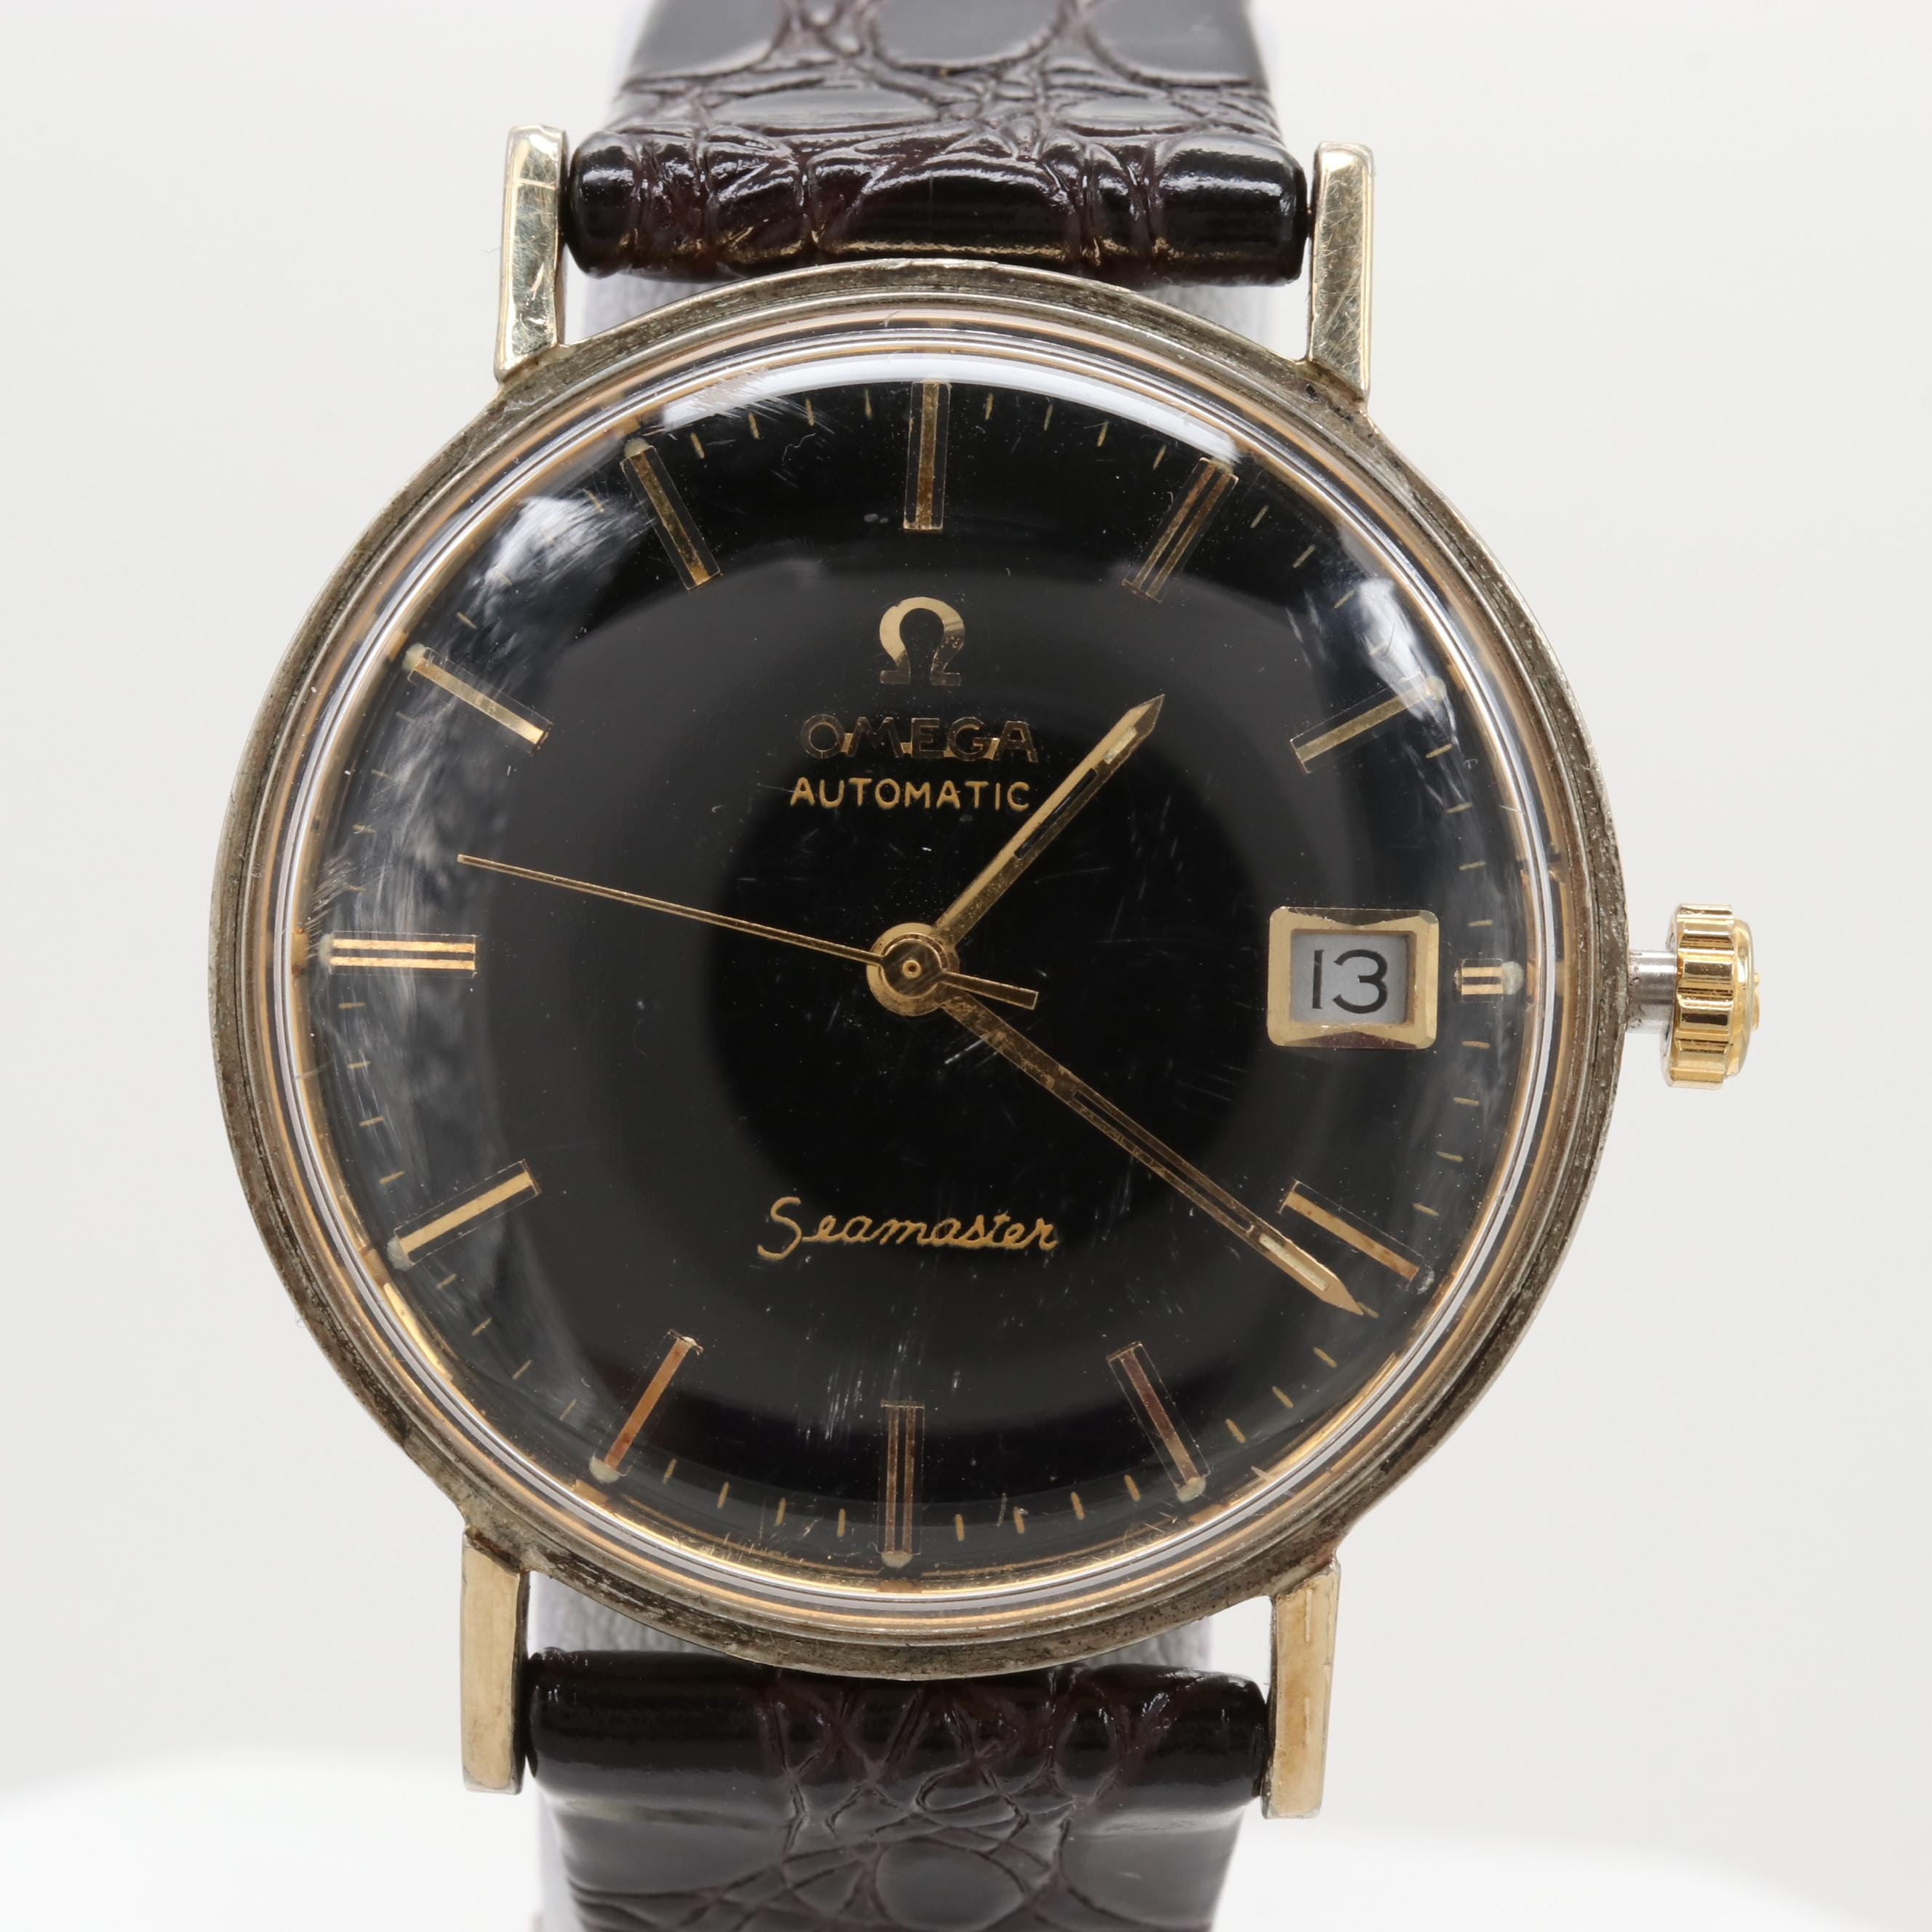 Vintage Omega Seamaster DeVille Gold Filled  Automatic Wristwatch, Circa 1968